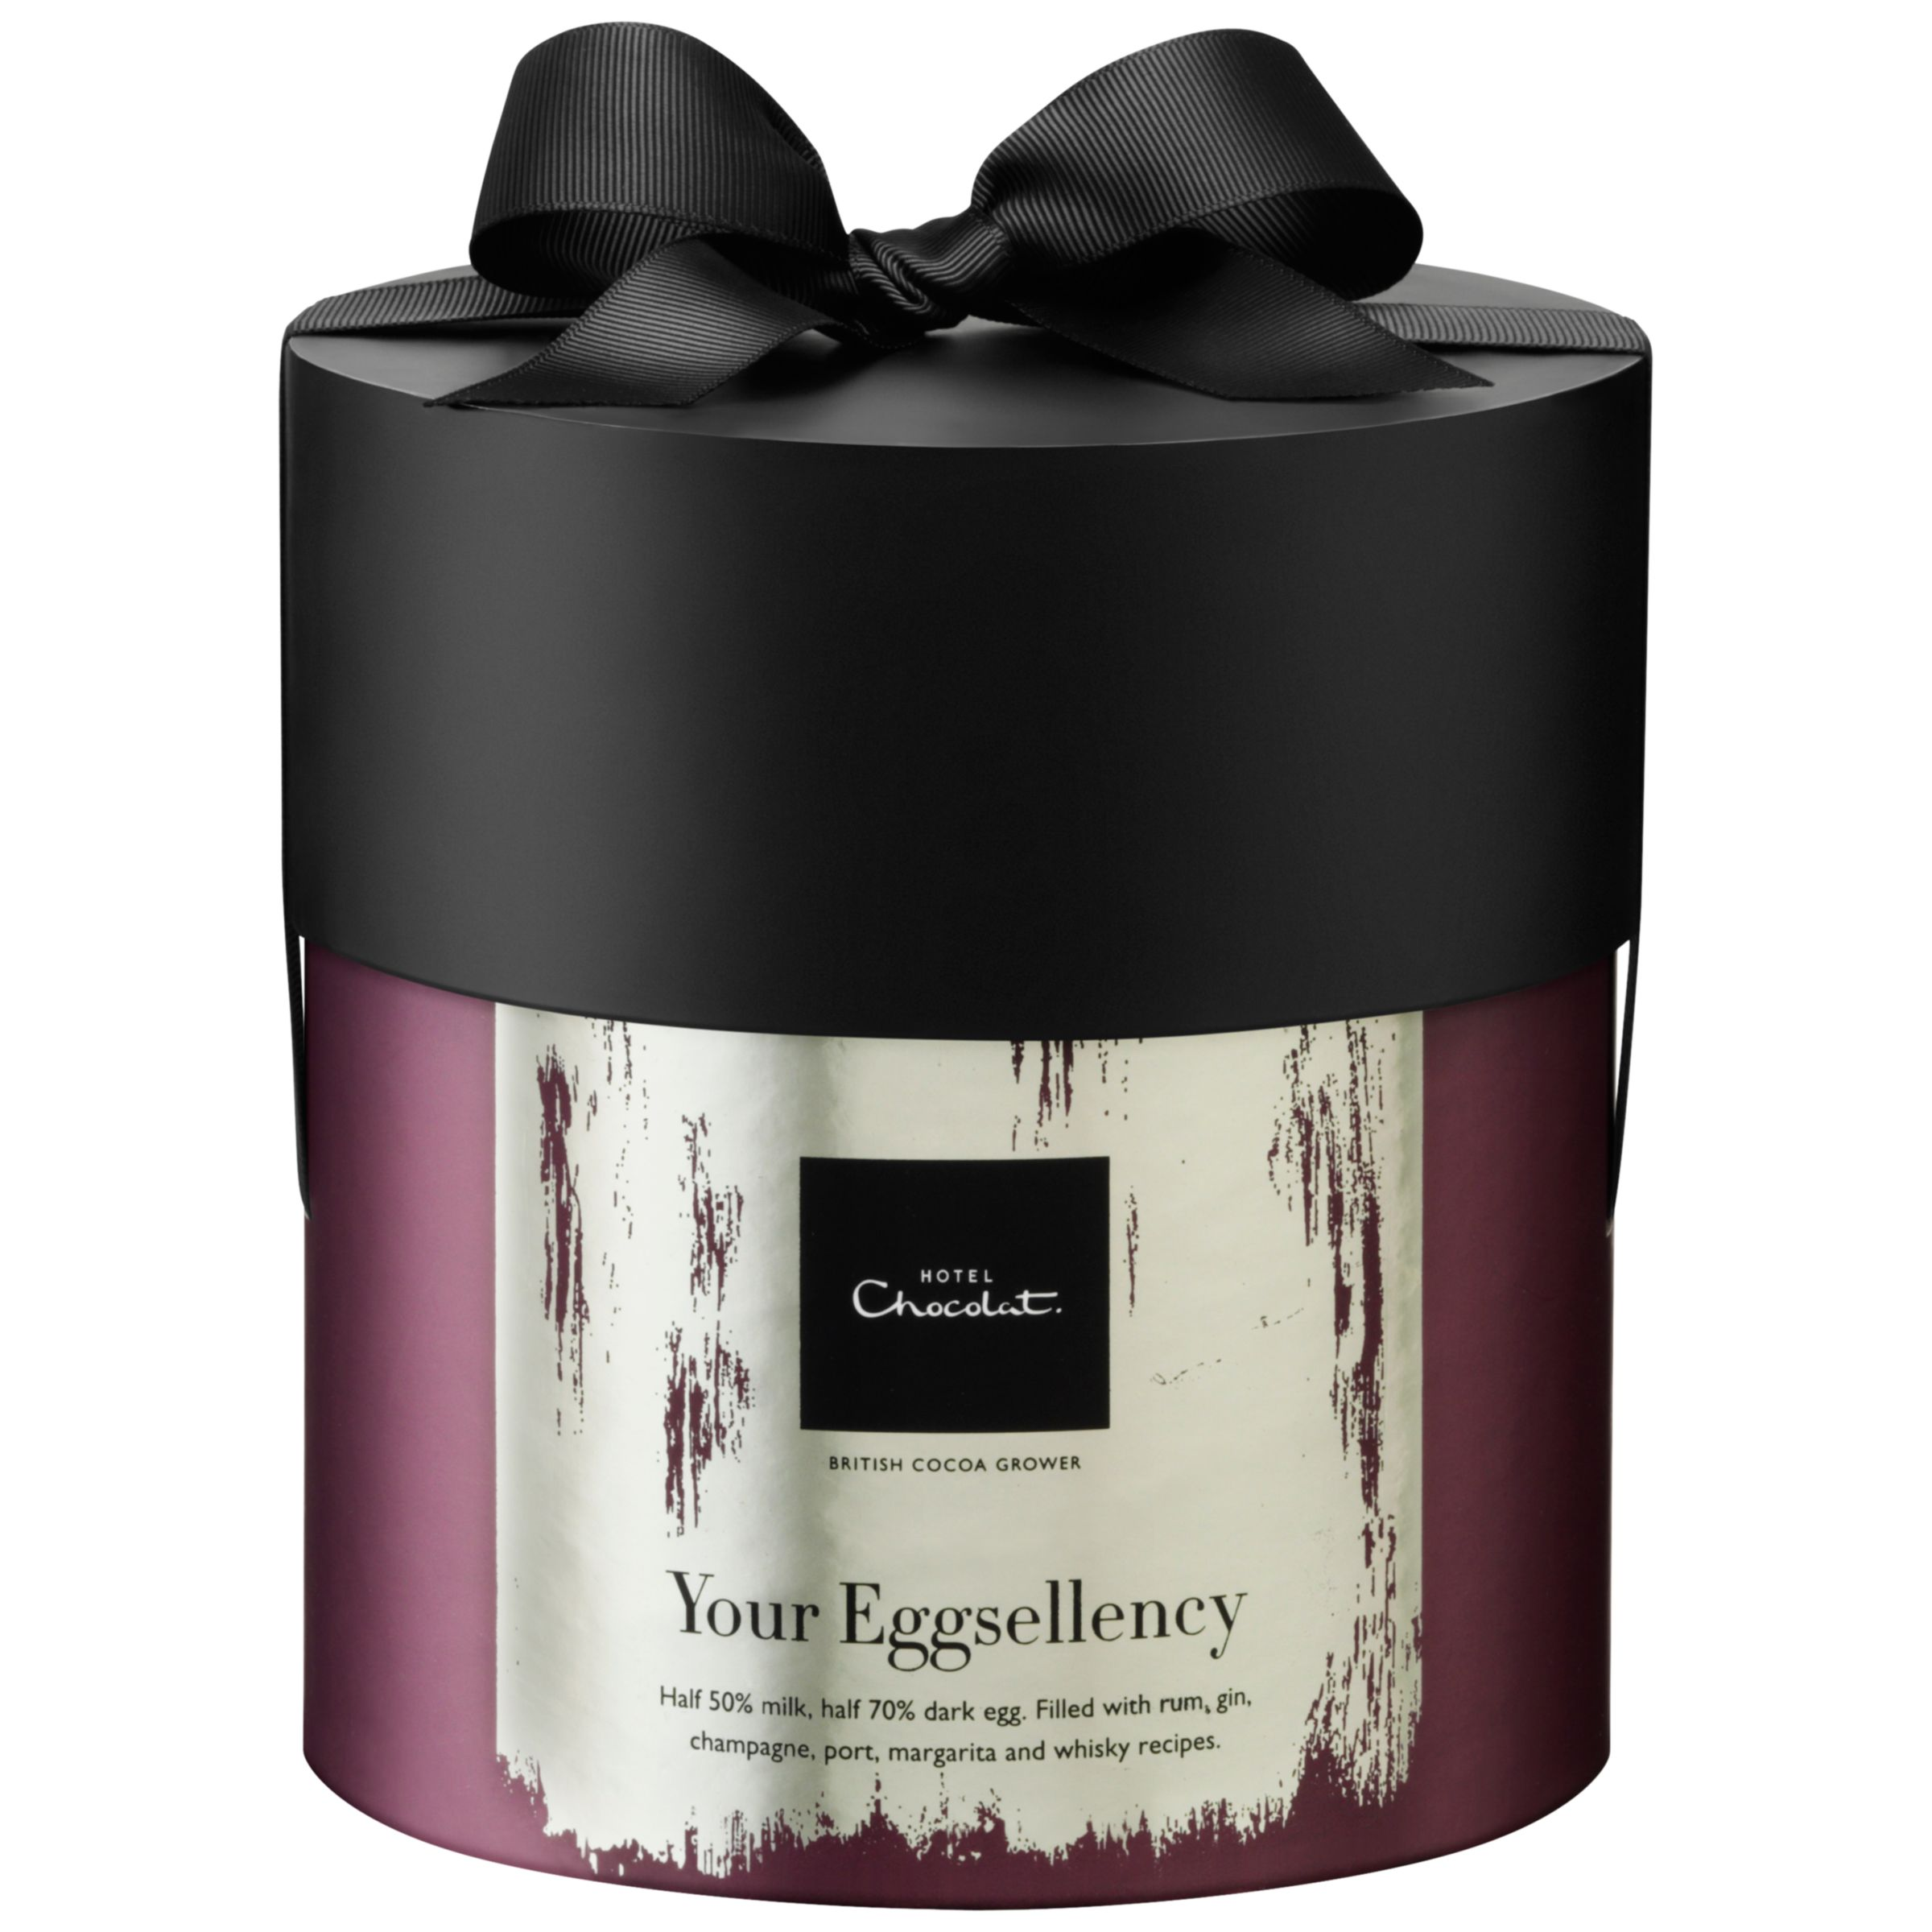 Hotel Chocolat Hotel Chocolat 'Your Eggsellency' Extra-Thick Easter Egg, 390g